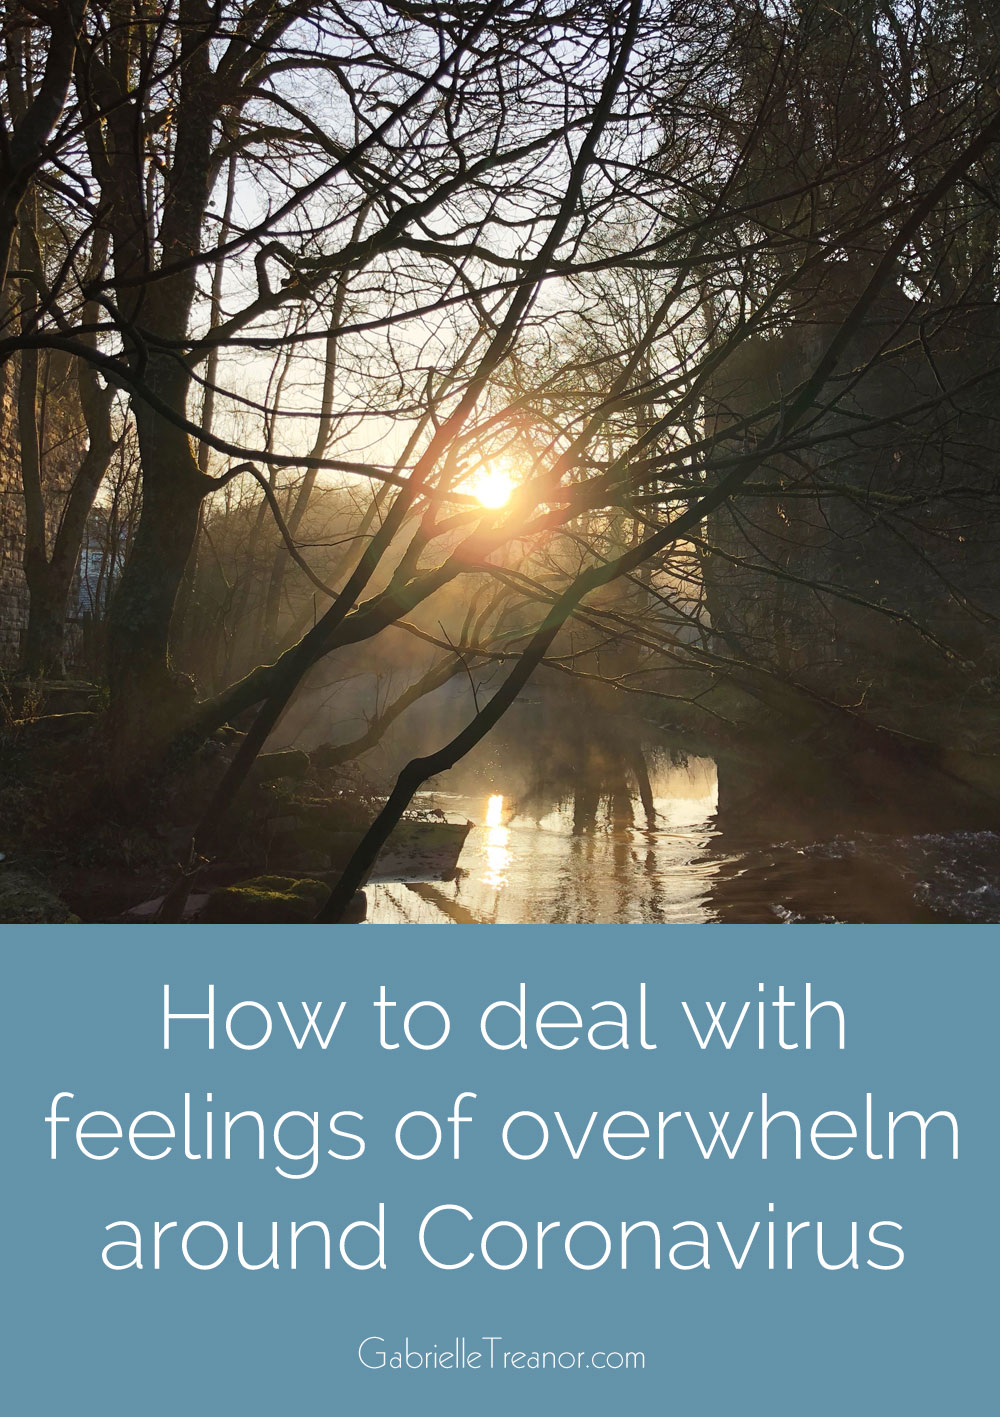 How to deal with feelings of overwhelm around Coronavirus